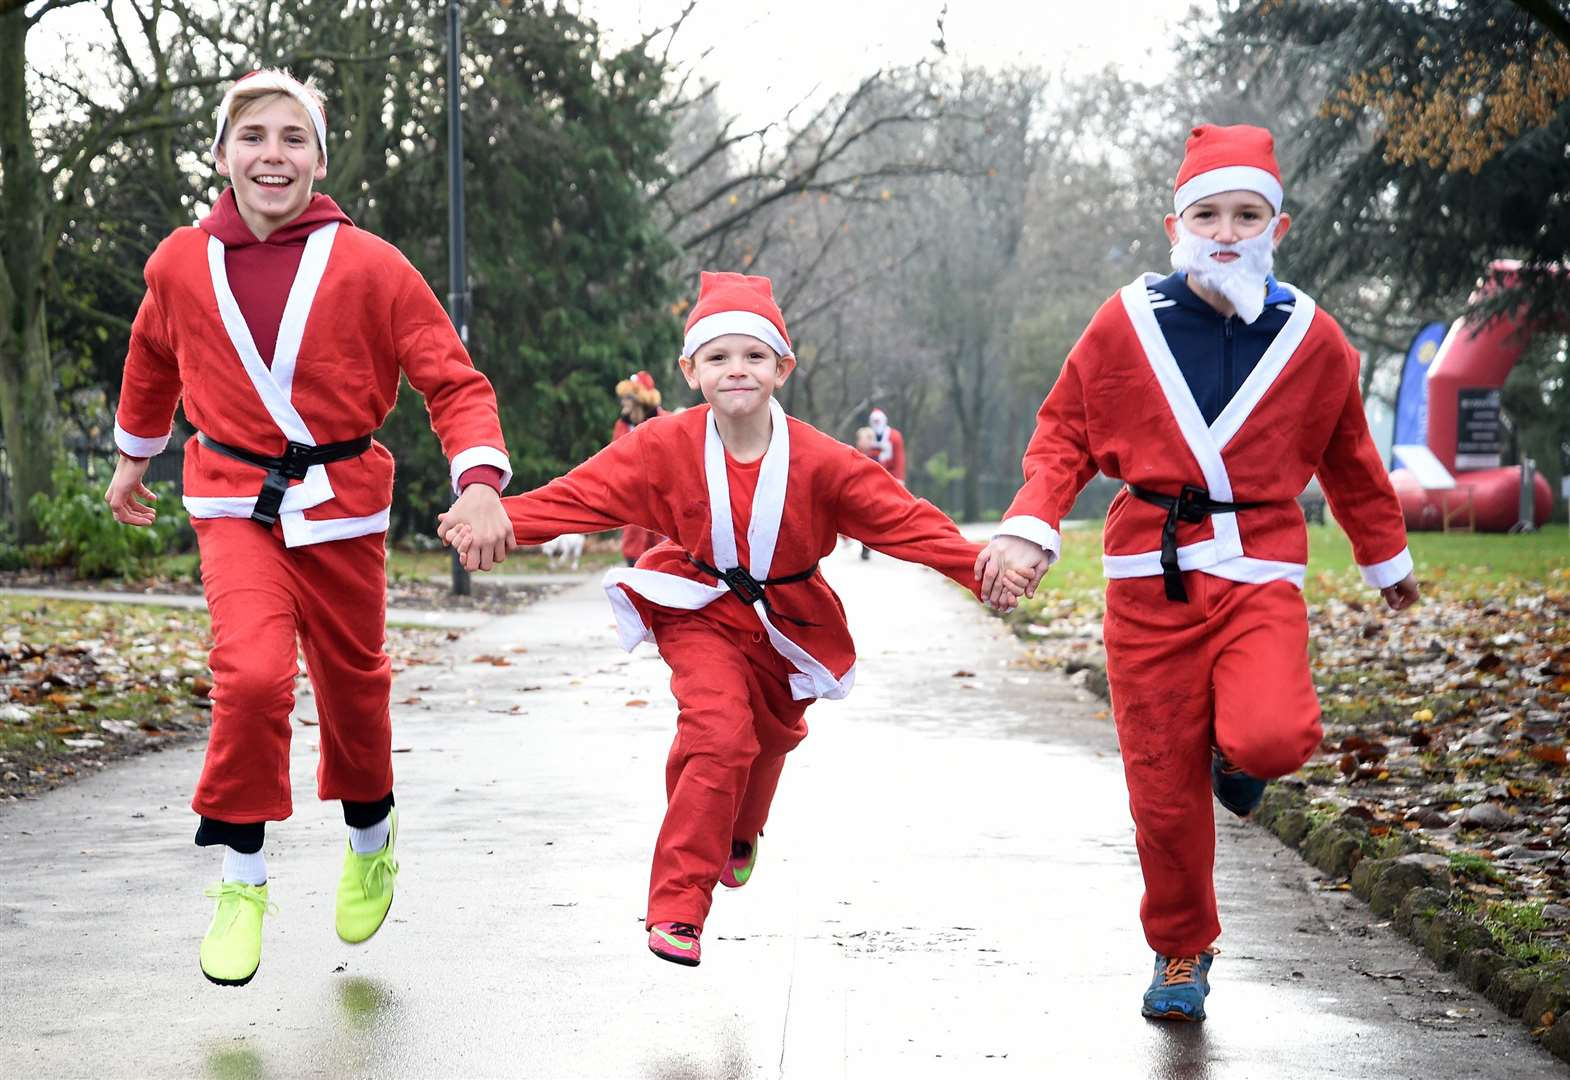 Watch the Grantham Santa fun runners in this video